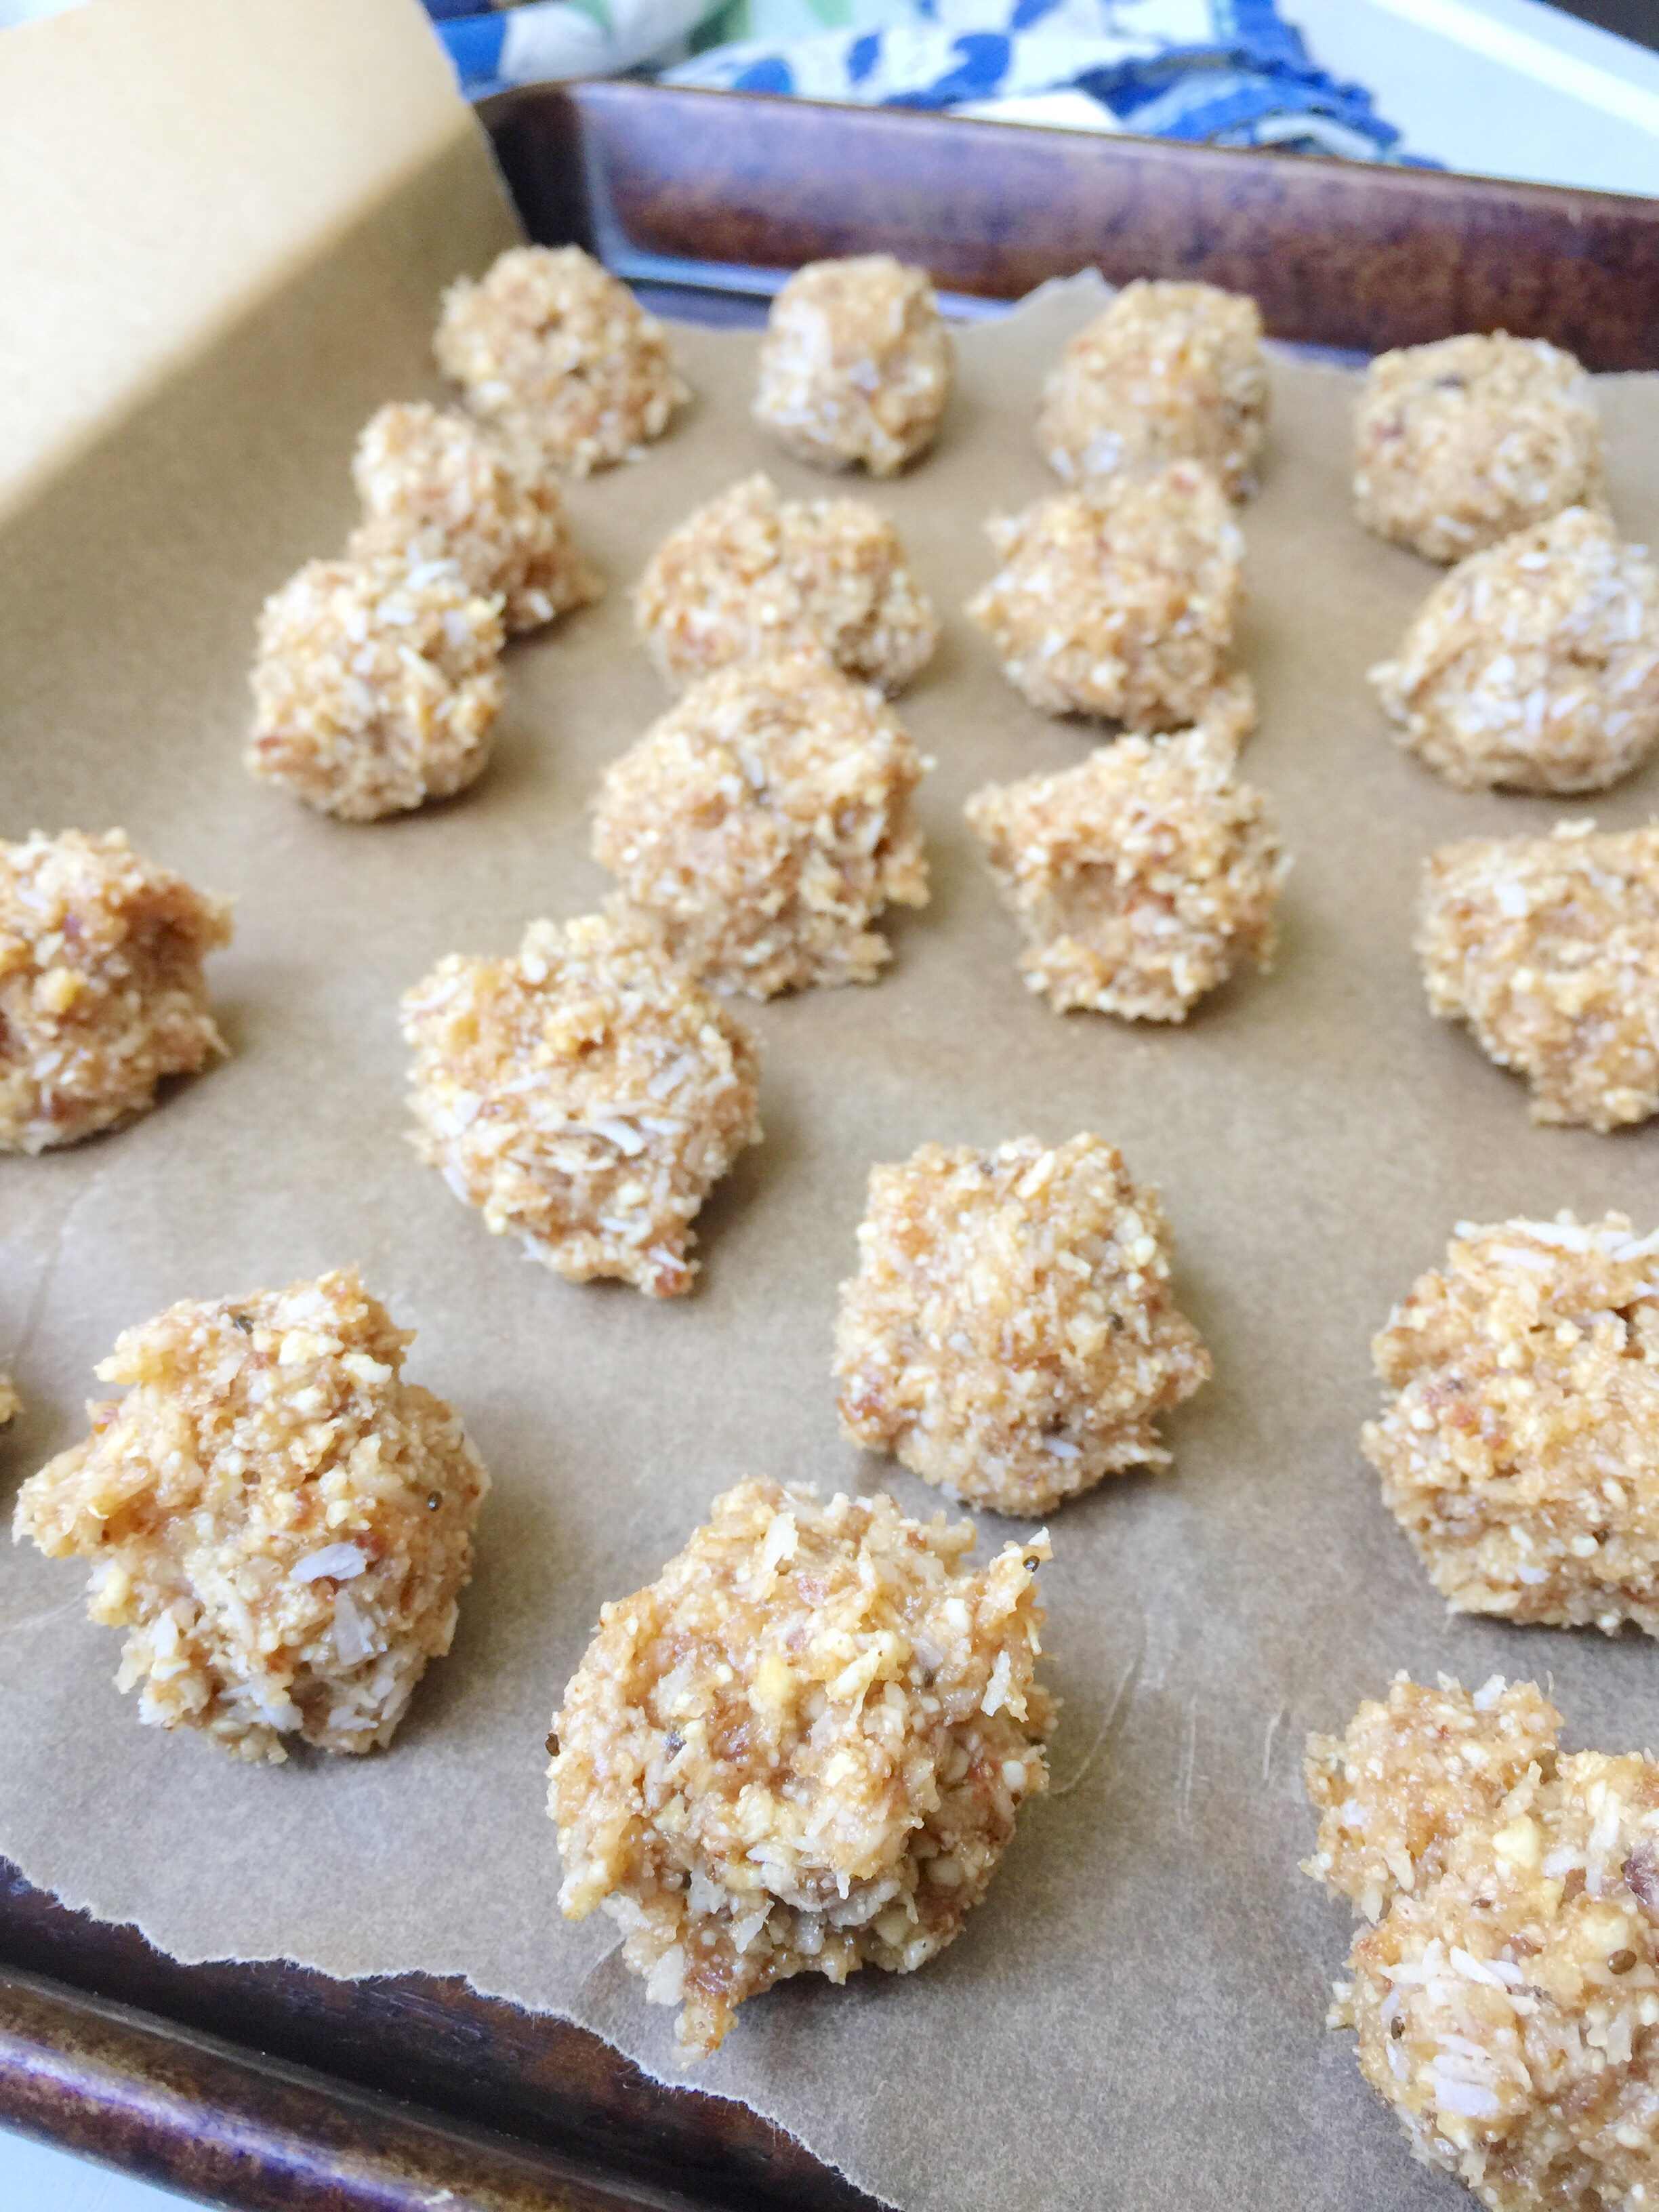 These are our favorite energy ball recipe! Lemon Cashew Coconut energy balls are so easy to make at home.